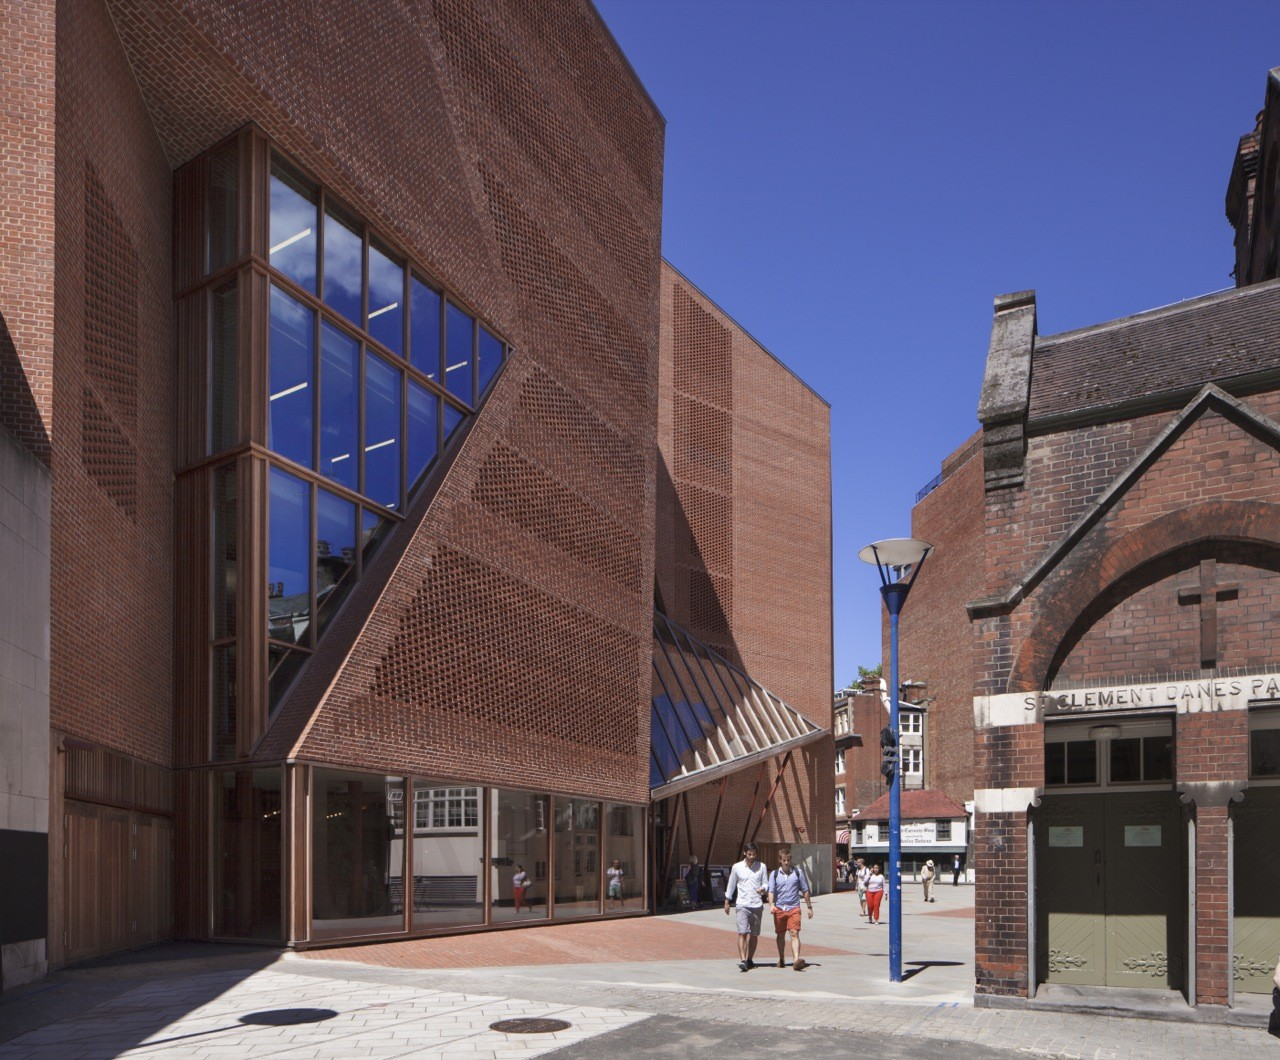 Centro de Estudantes LSE Saw Hock / O'Donnell + Tuomey Architects, © Alex Bland